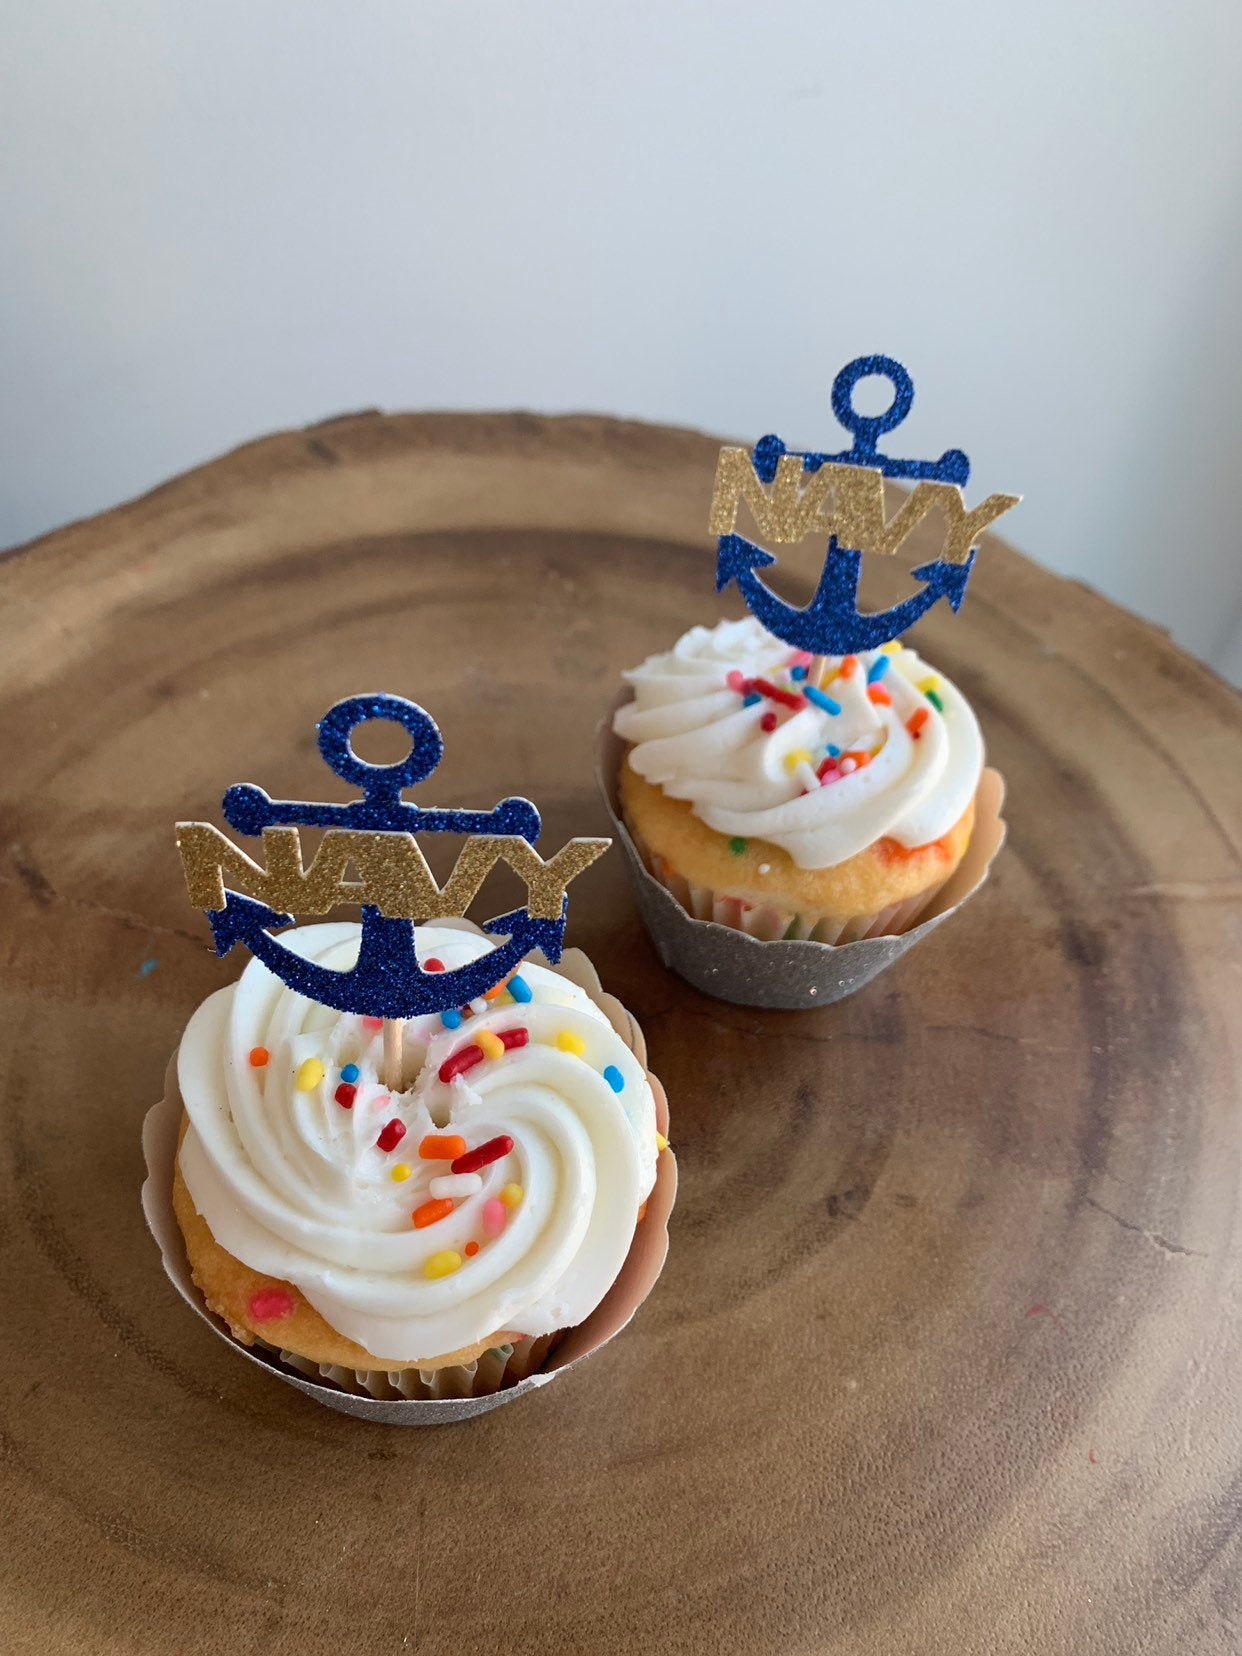 NAVY Anchor Cupcake Topper. USN Cupcake Topper Perfect for any NAVY Related Event! Enlistment, Promotion, Retirement, Commissioning!